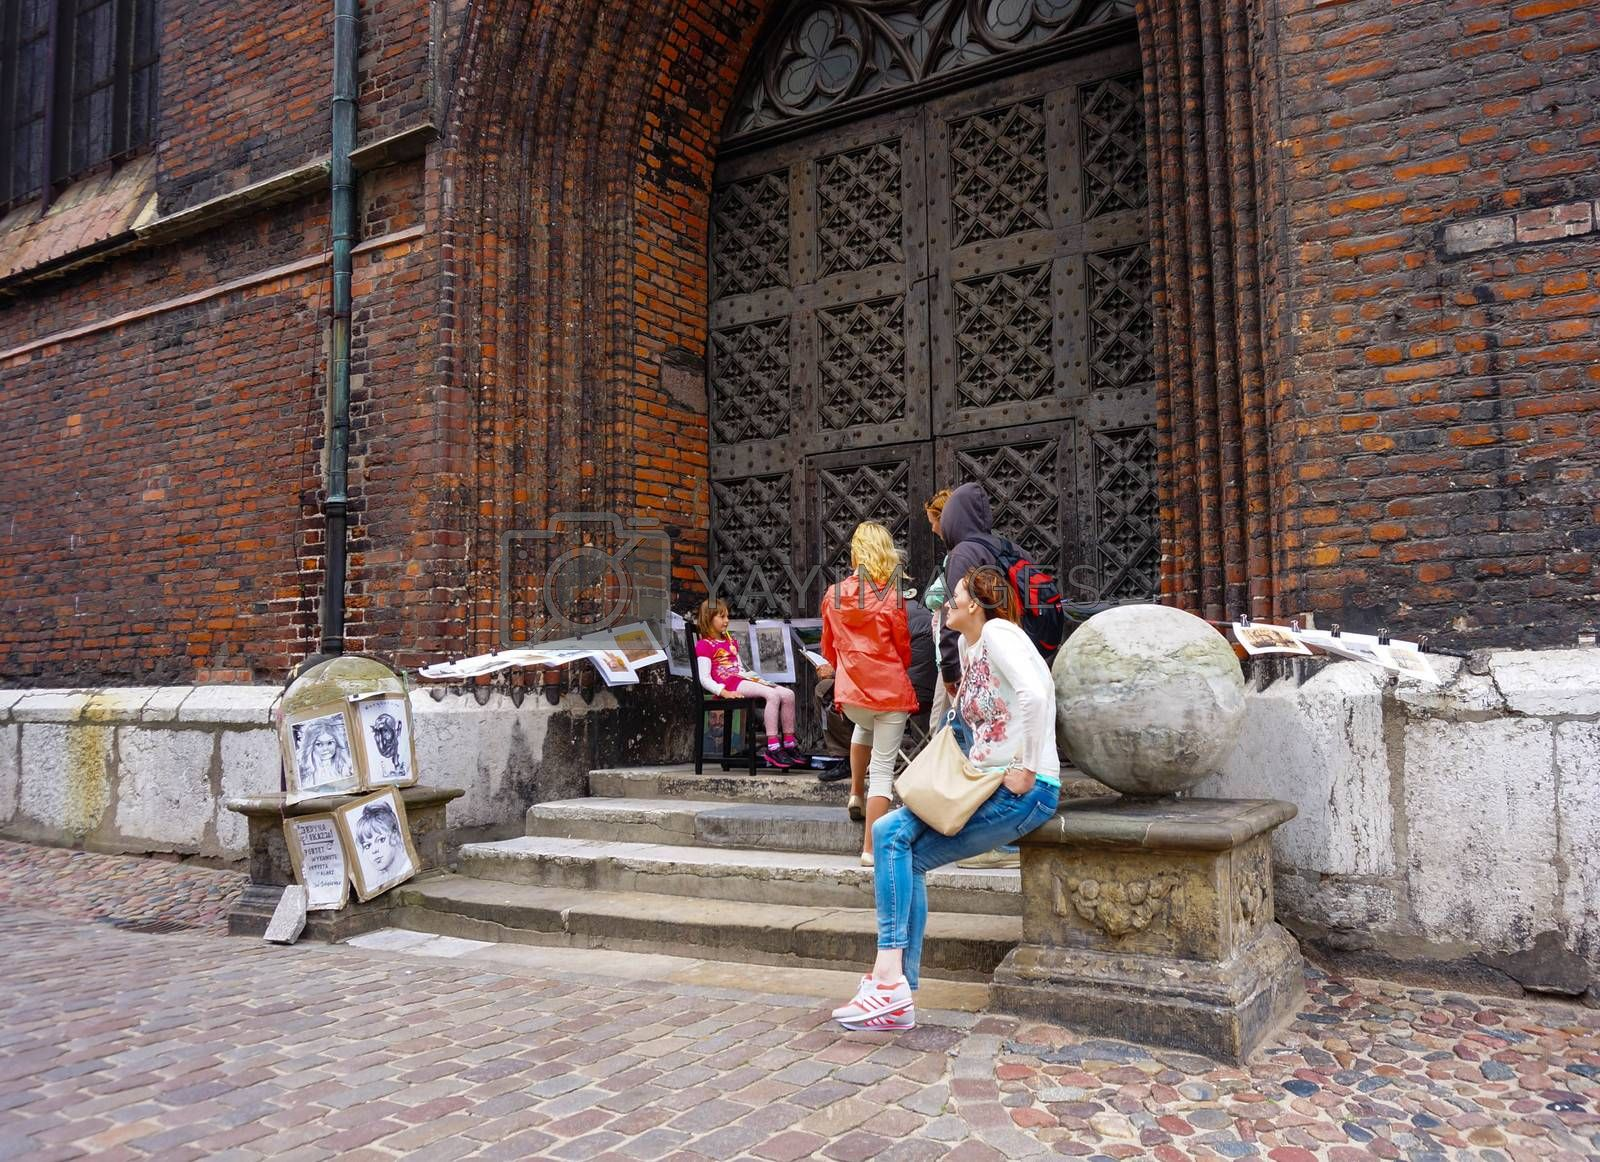 GDANSK, POLAND - JULY 29, 2015: People sitting in front of a cathedral entrance